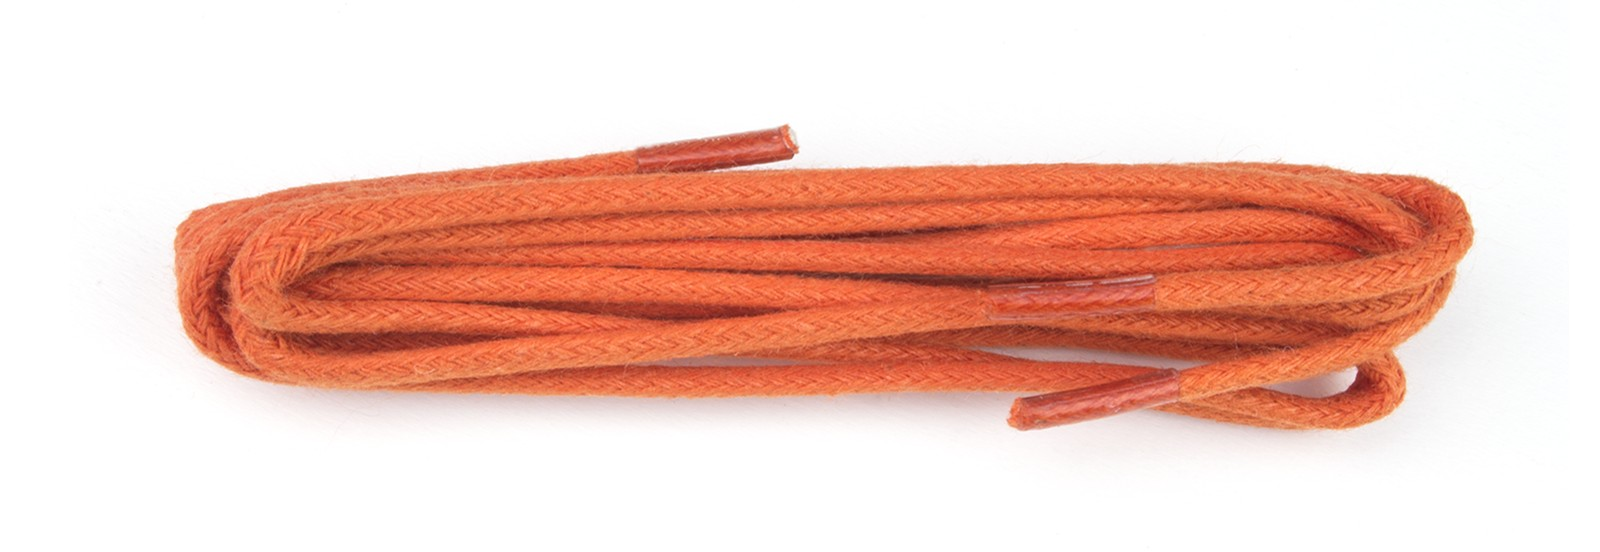 Orange Wax Polished 2mm Fine Round 75cm Laces